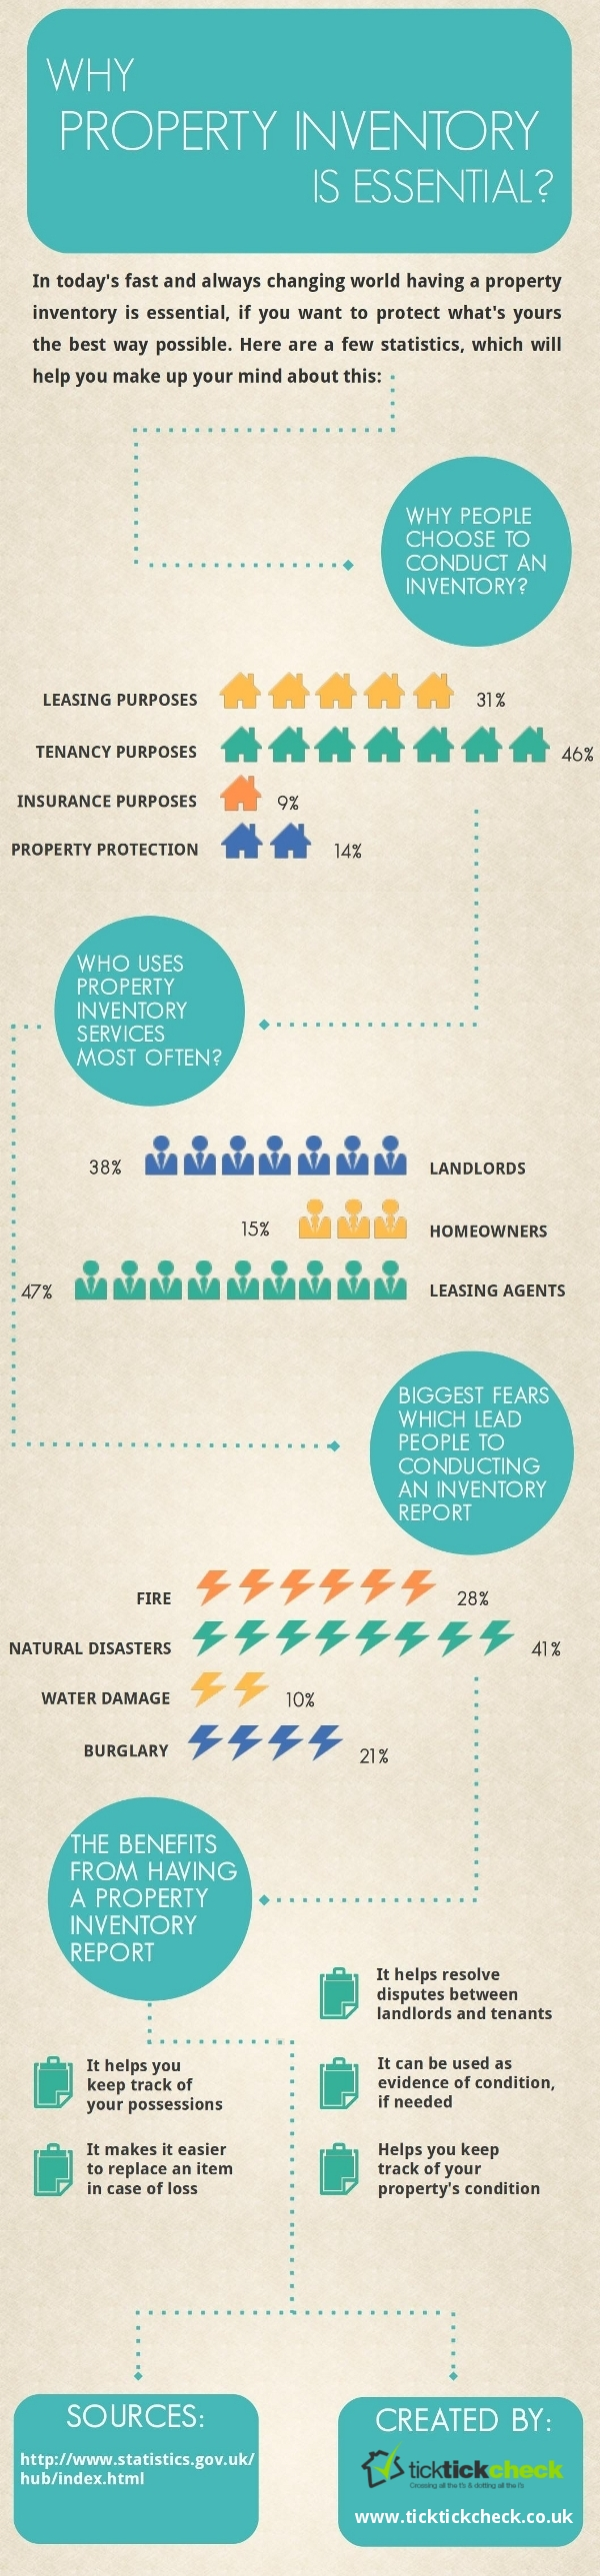 property-inventory-infographic